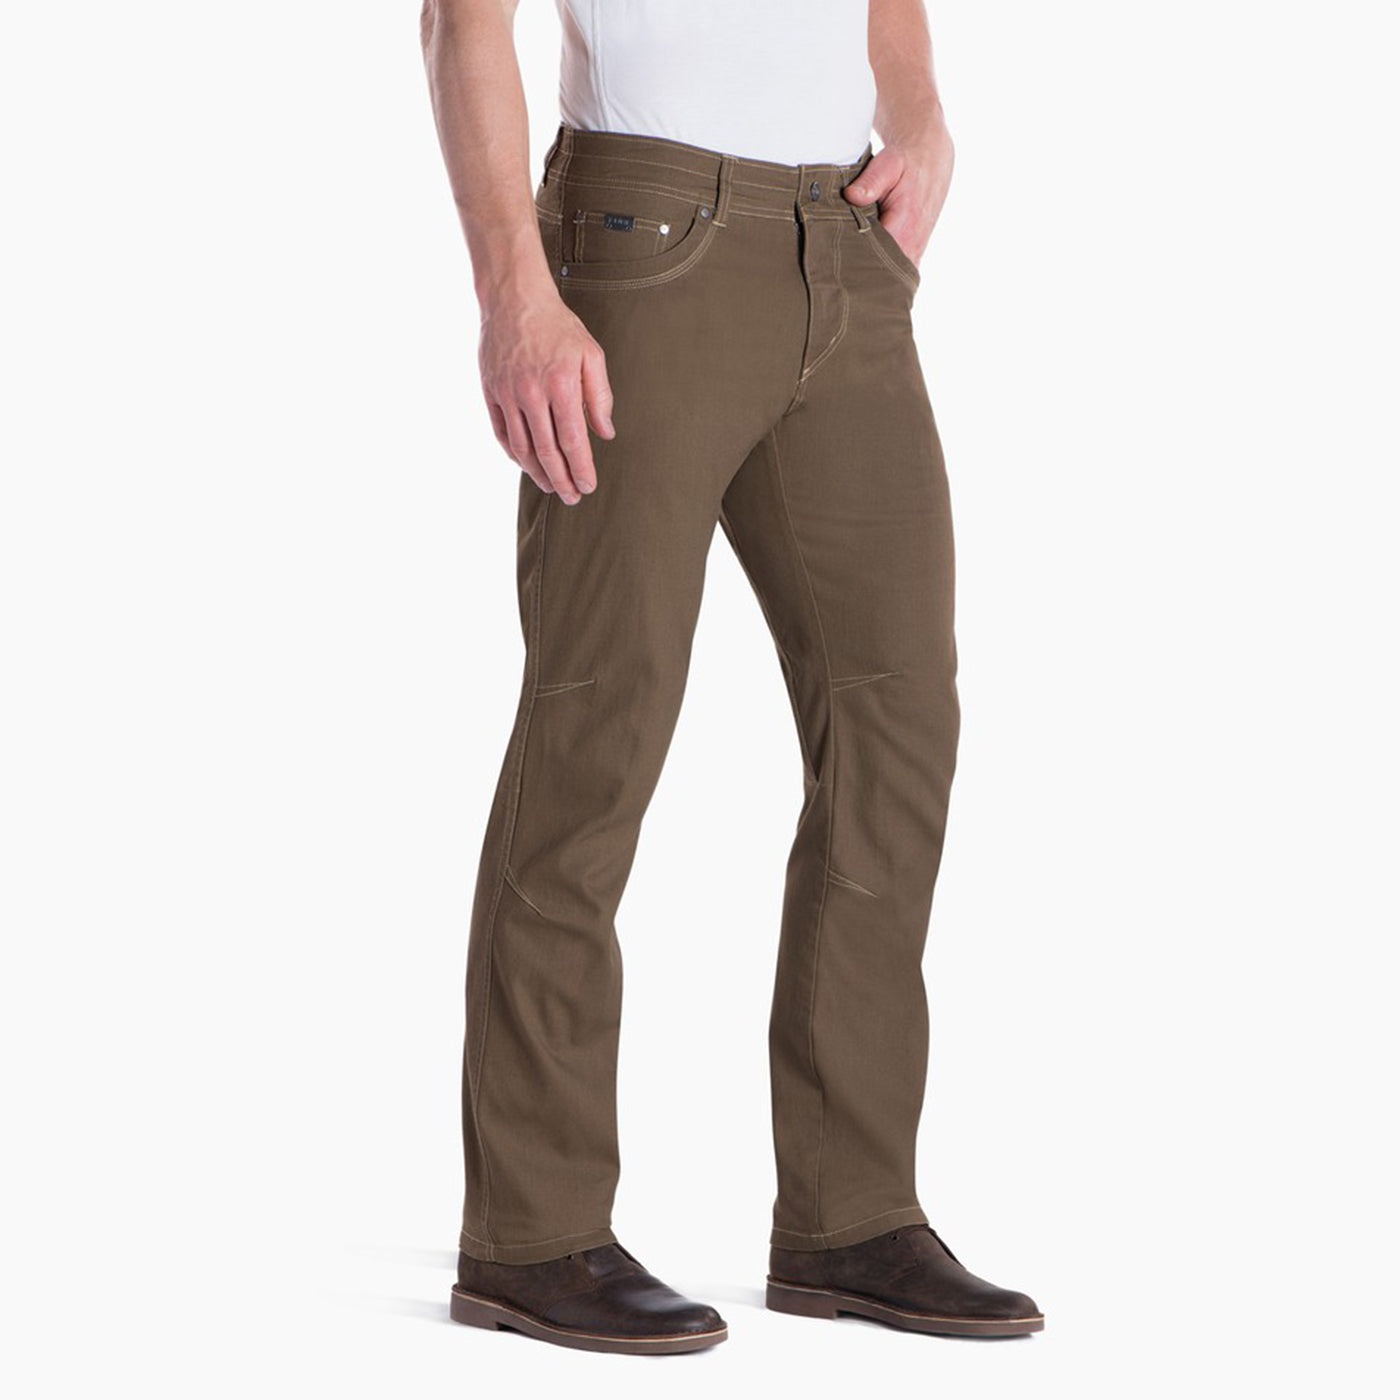 kuhl kanvus jean mens on model three quarter view in color dark khaki brown